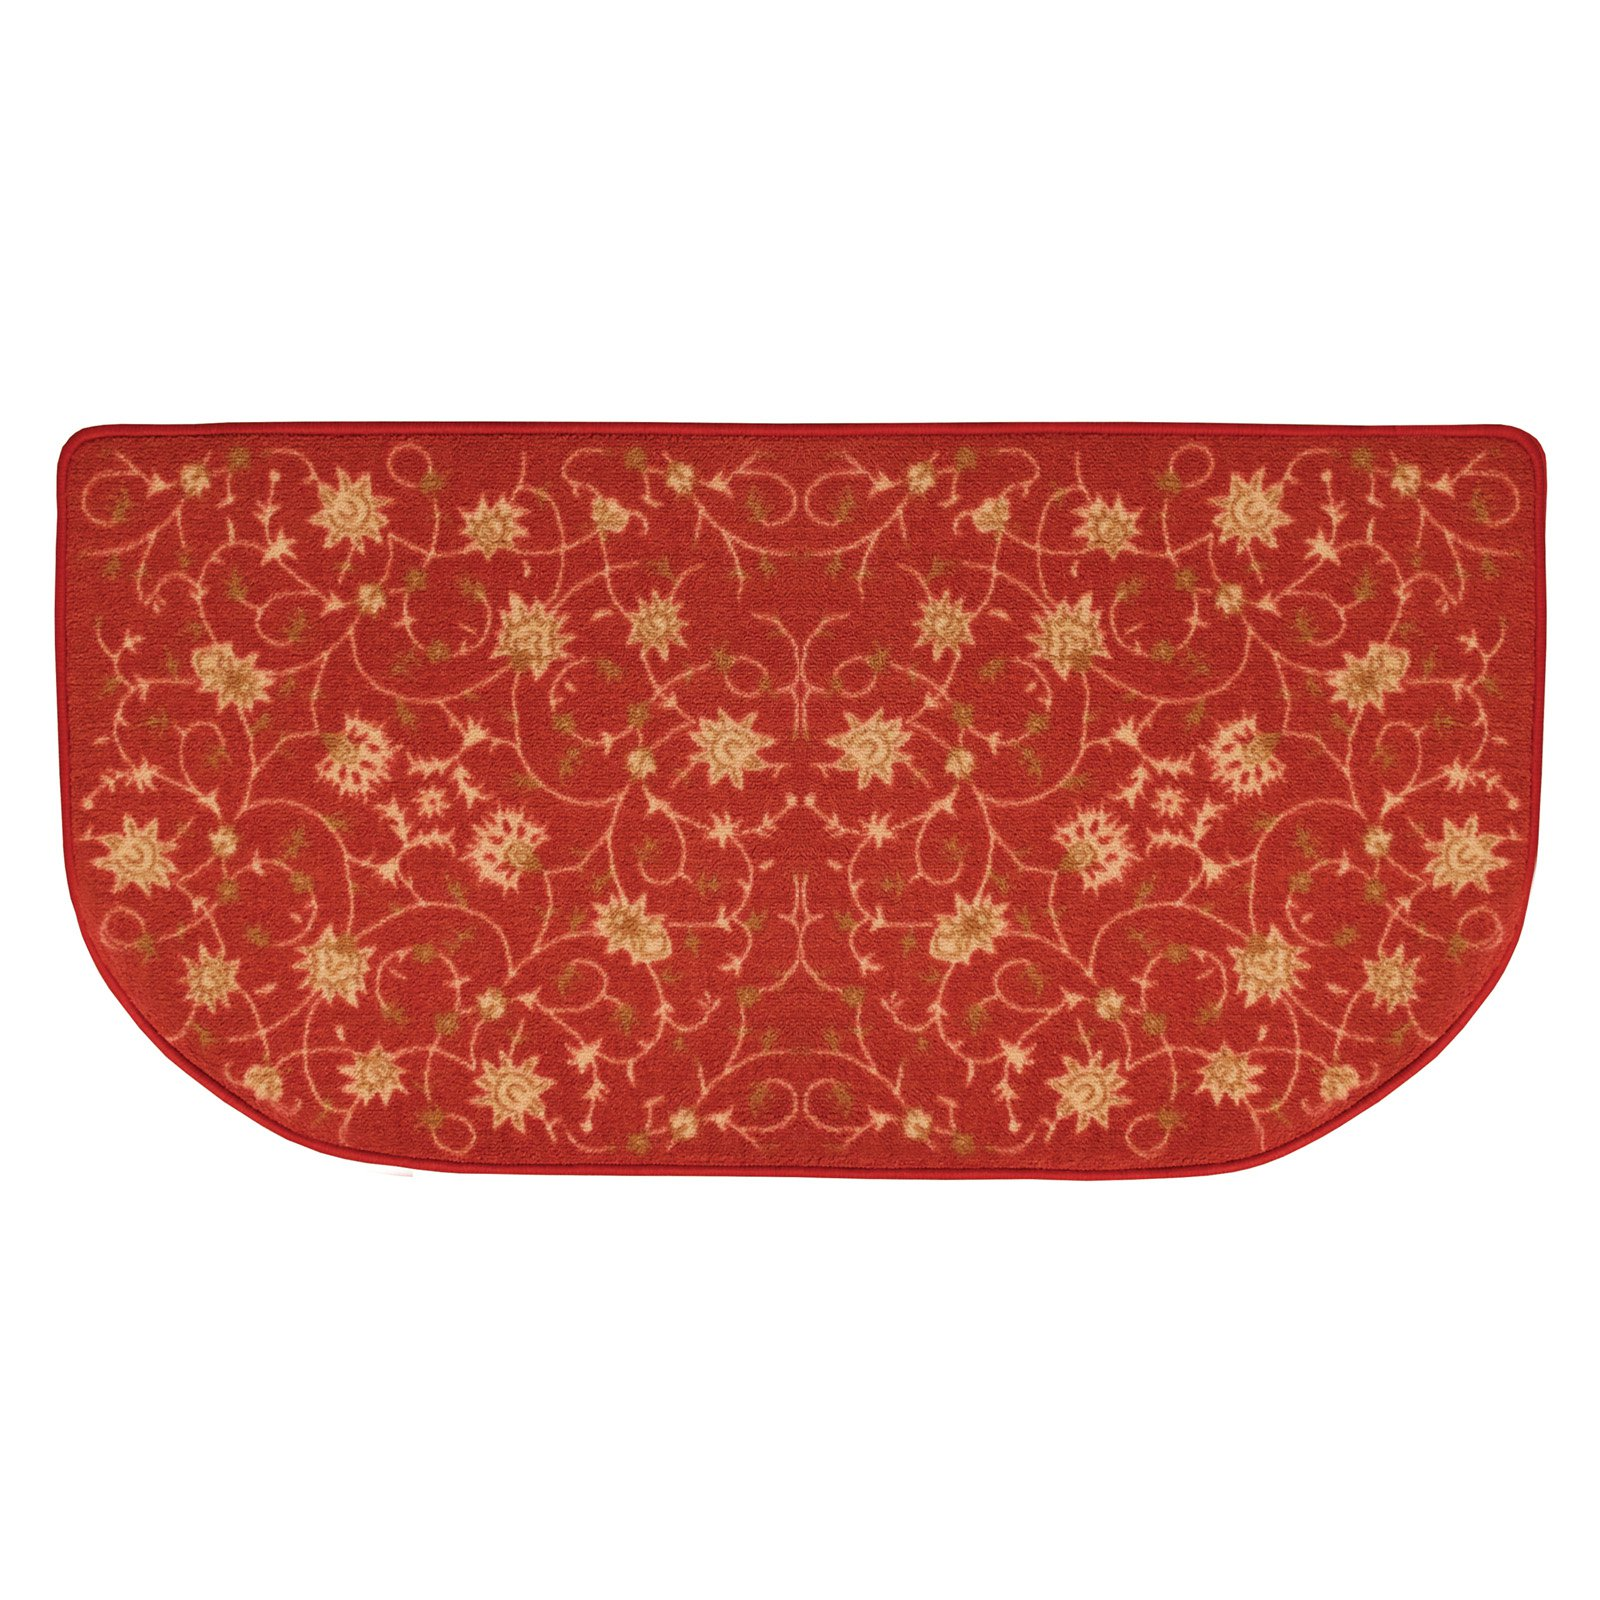 Uniflame Nylon Hearth Rug - Floral